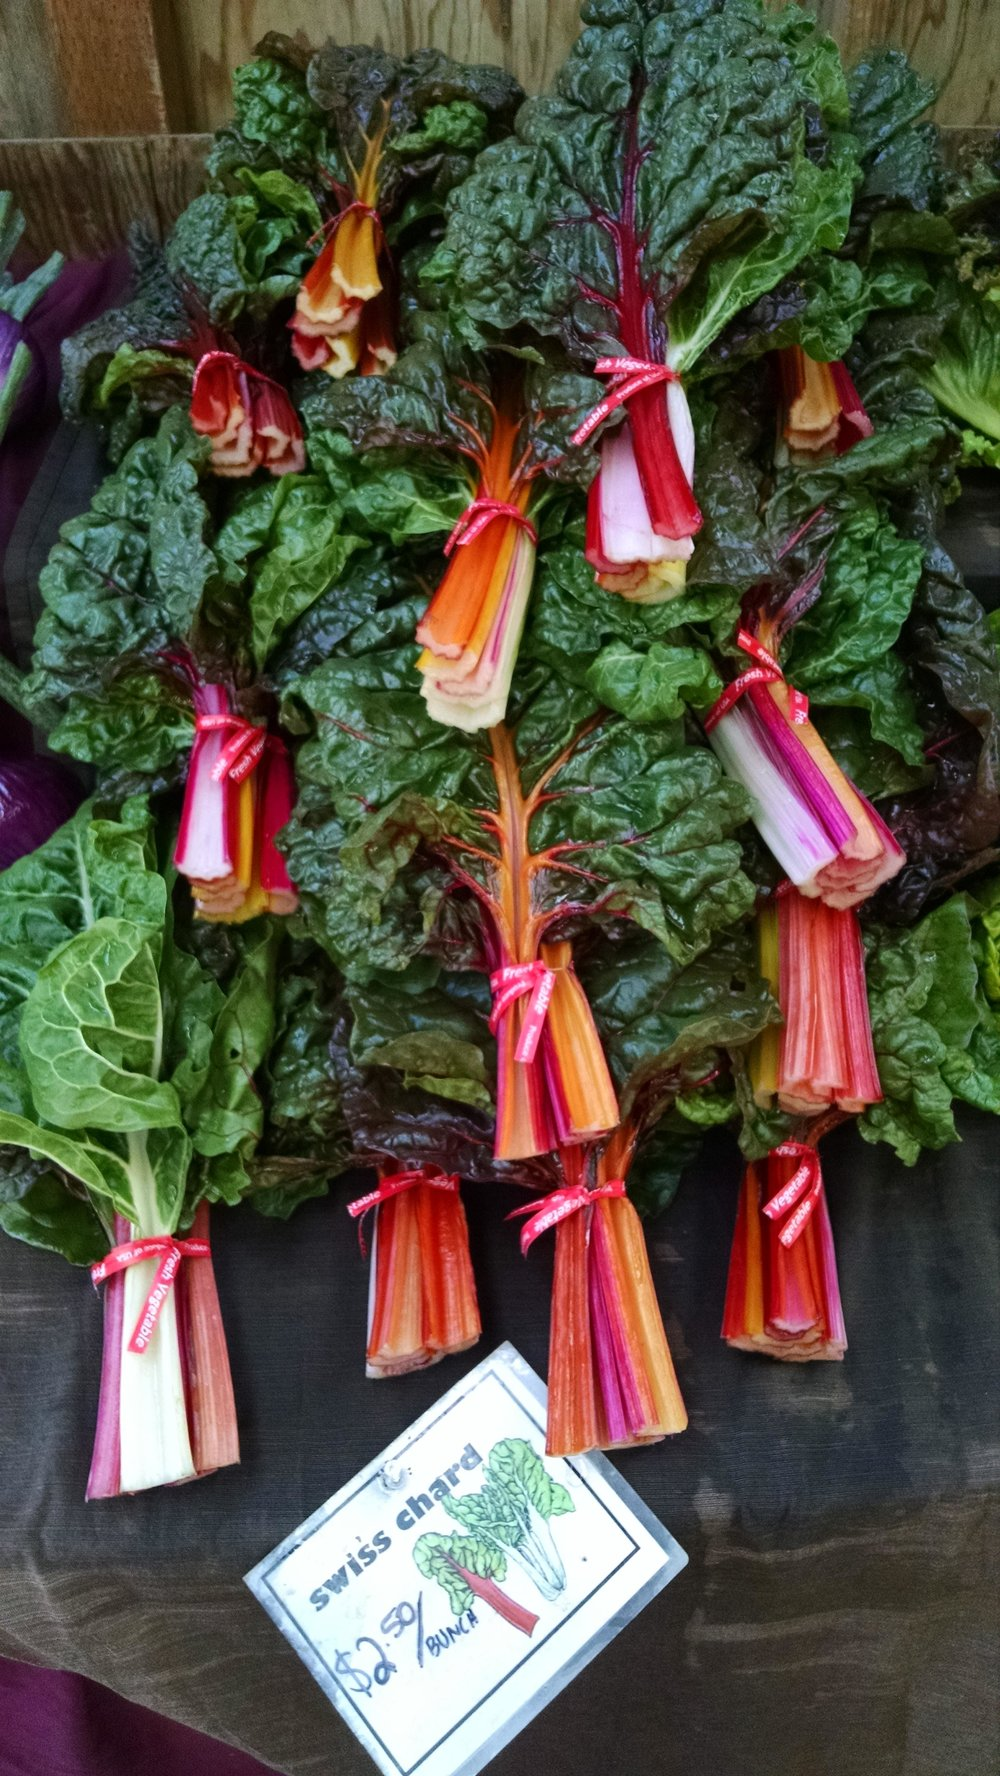 Swiss chard display